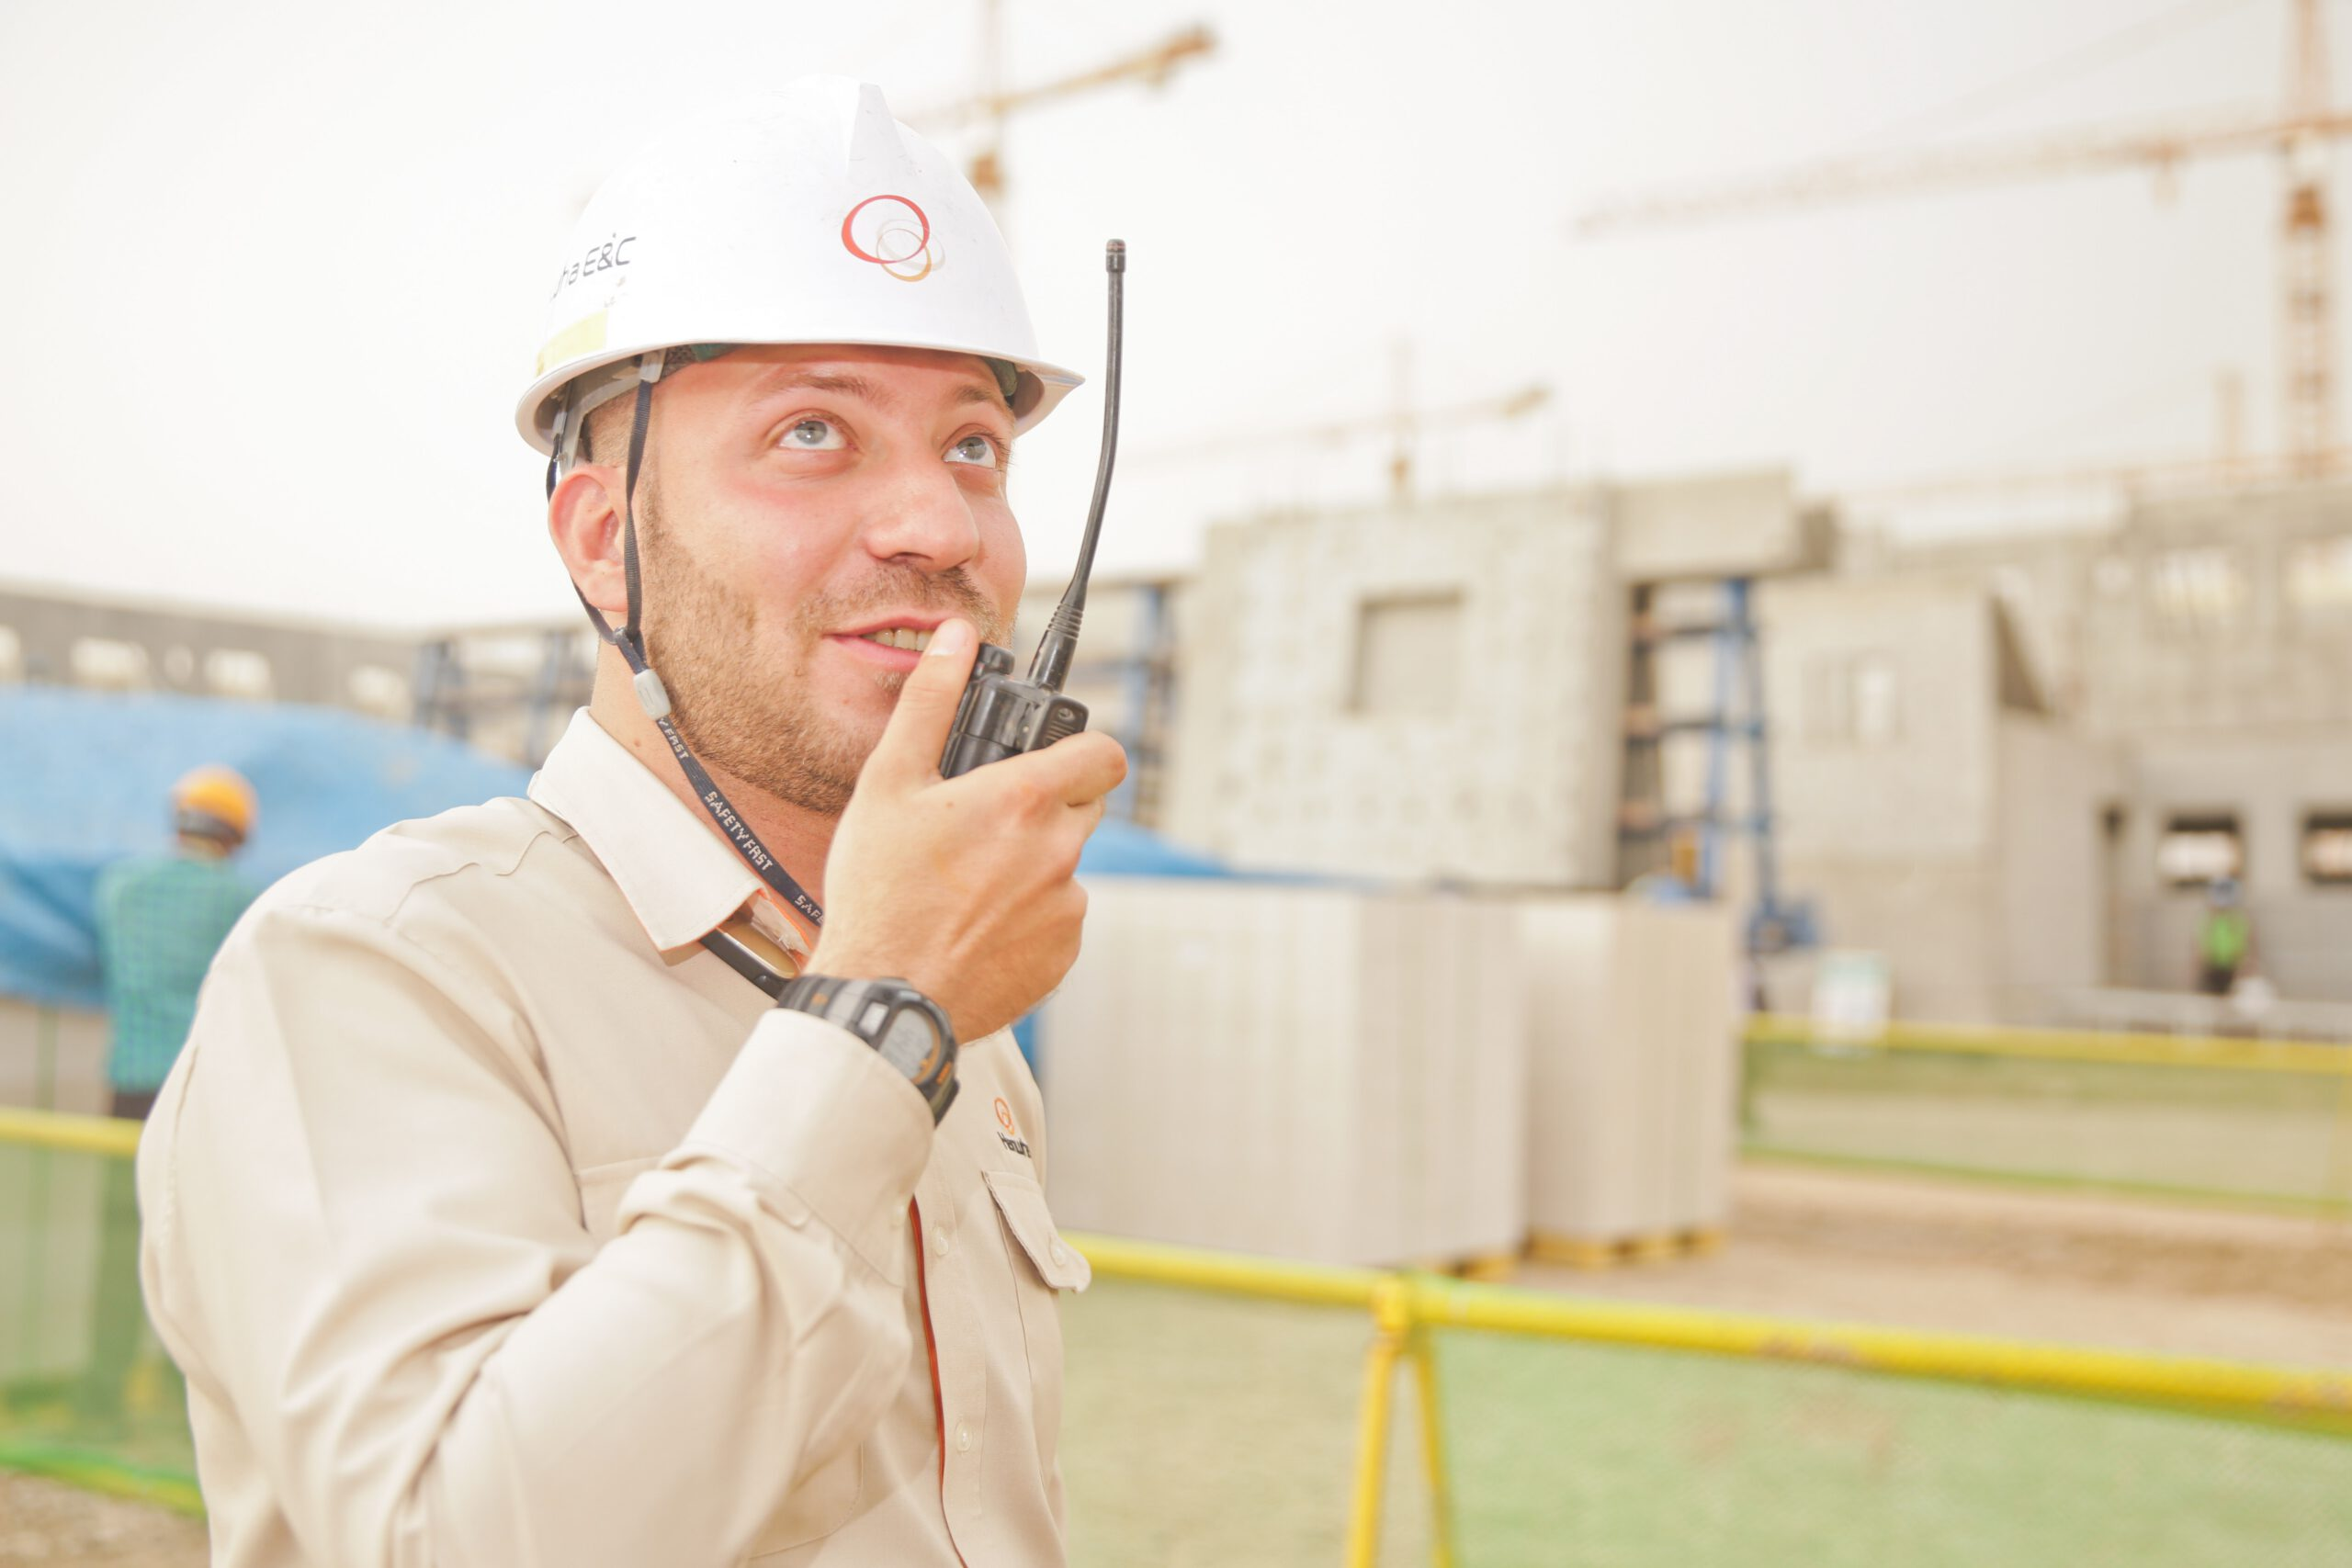 man-wearing-white-hard-hat-holding-2-way-radio-1078879